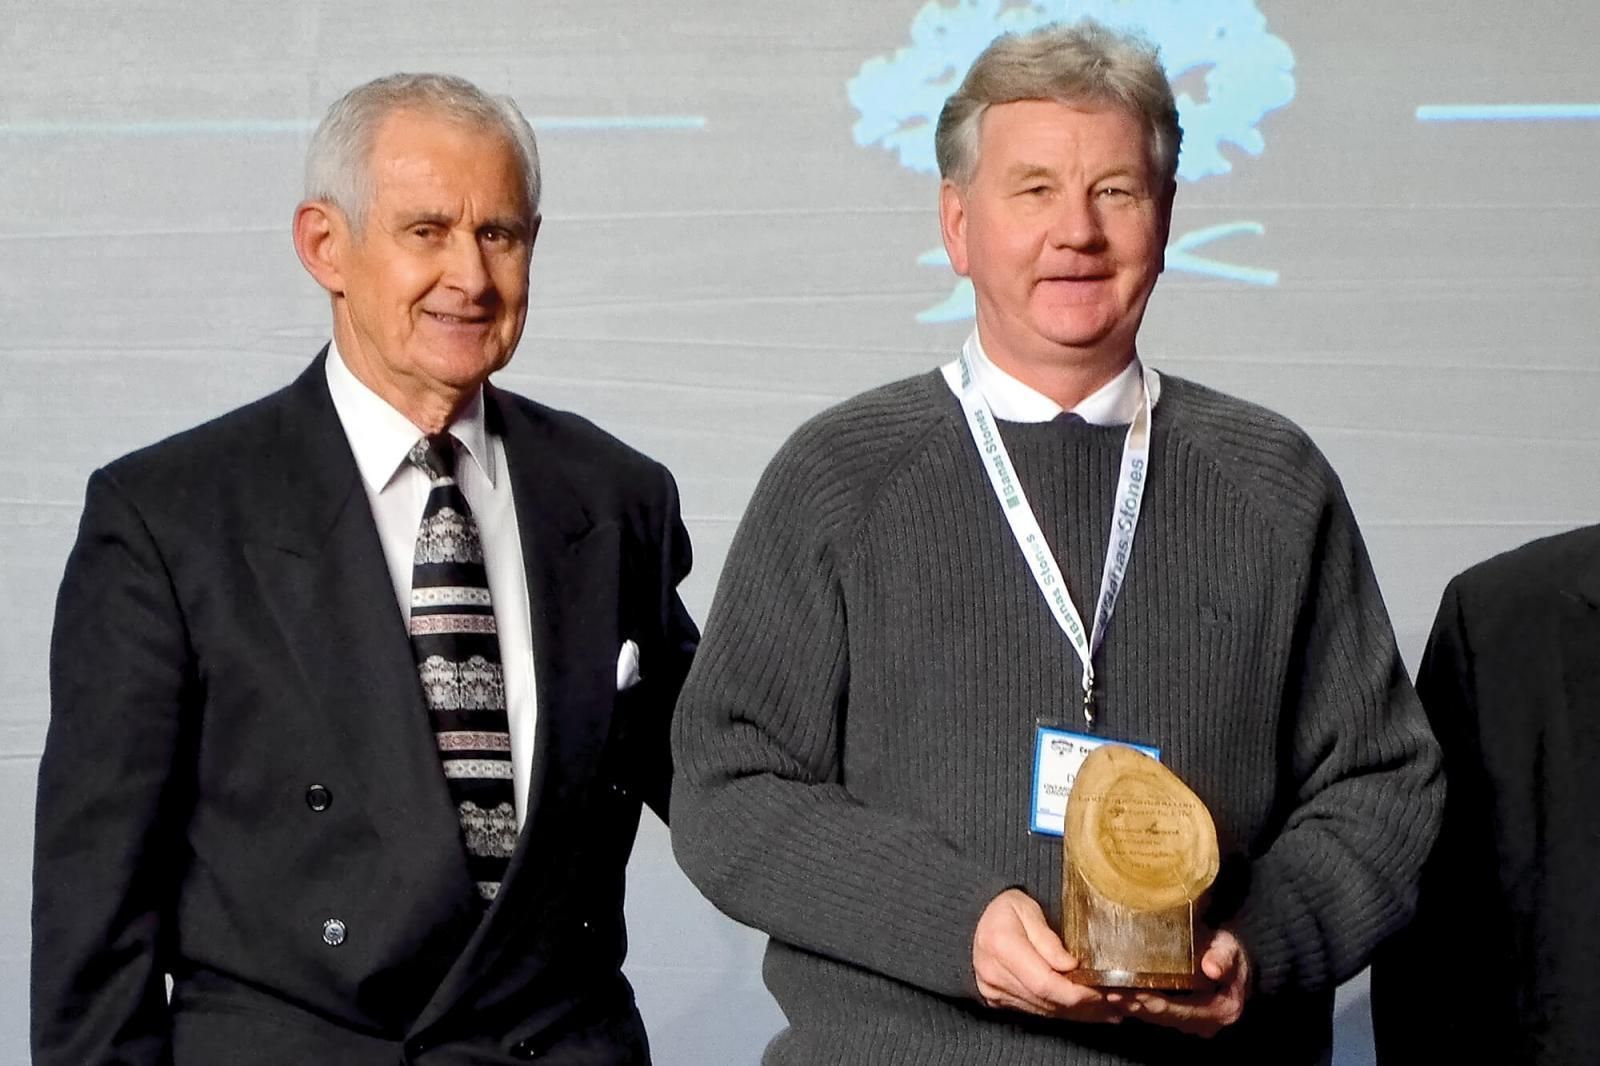 Terry Murphy presents Trillium Award to Jim Douglas at Congress 2014.